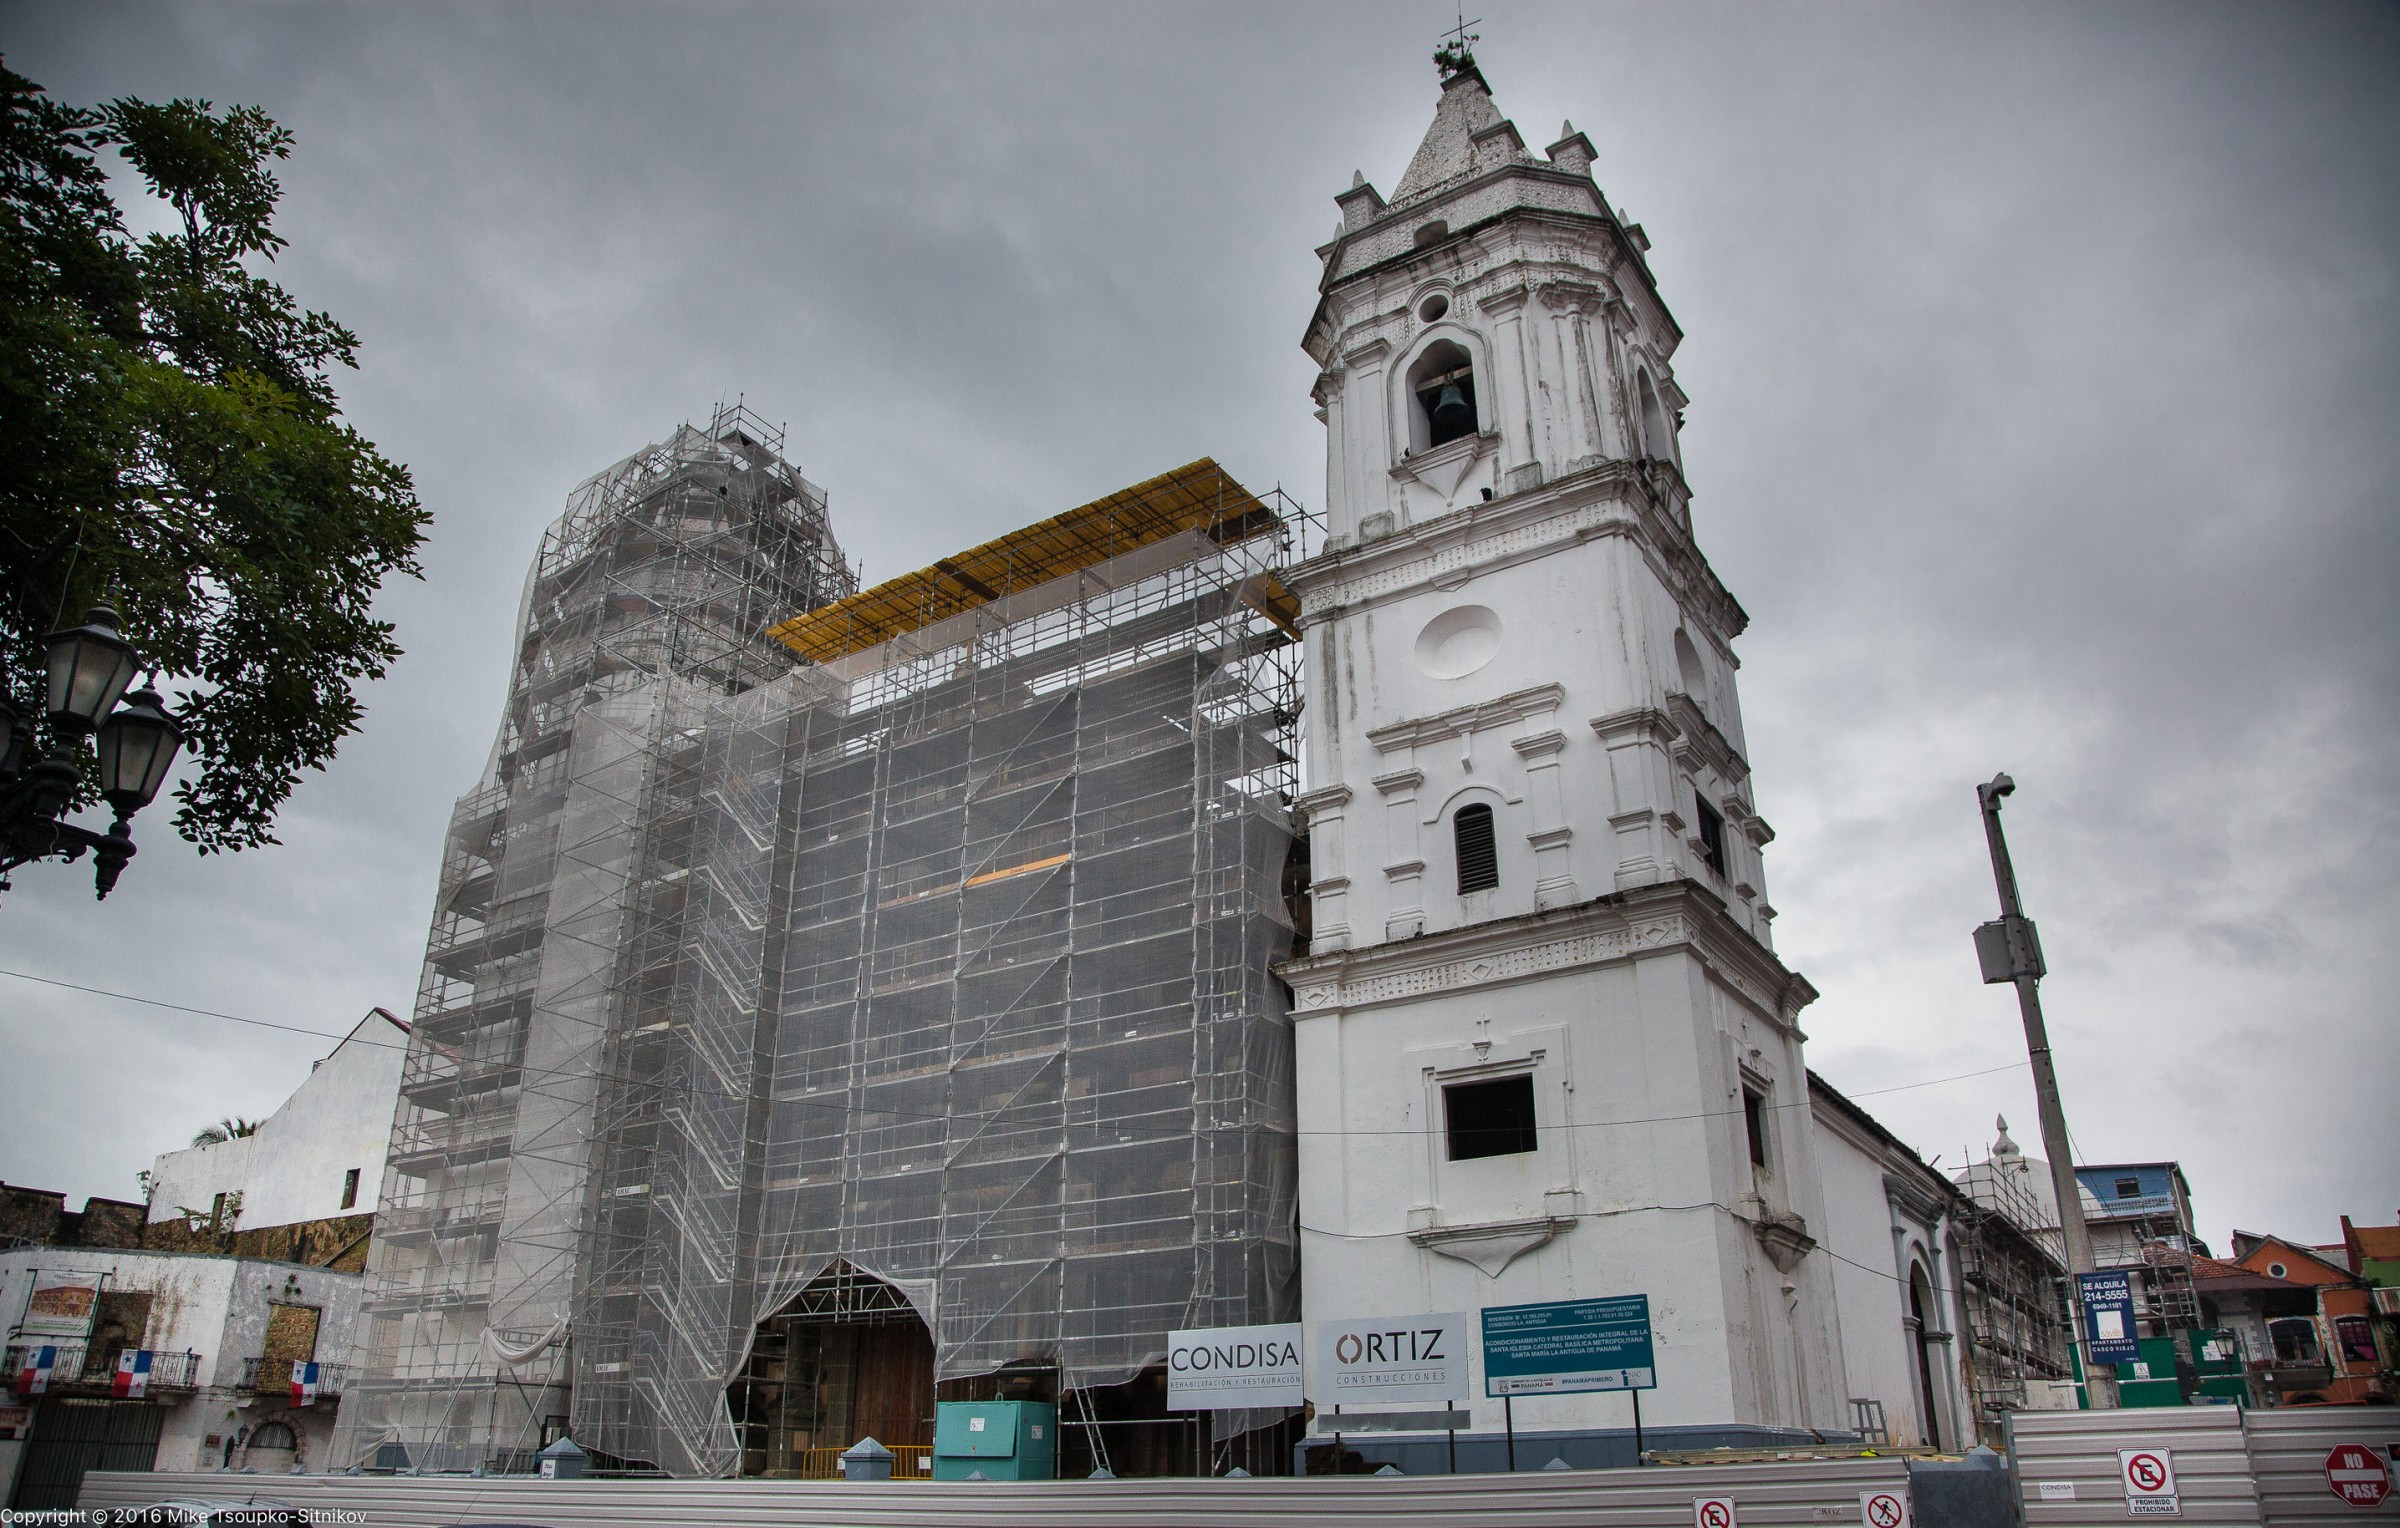 Panama City: the Metropolitan Cathedral of Panama under restoration